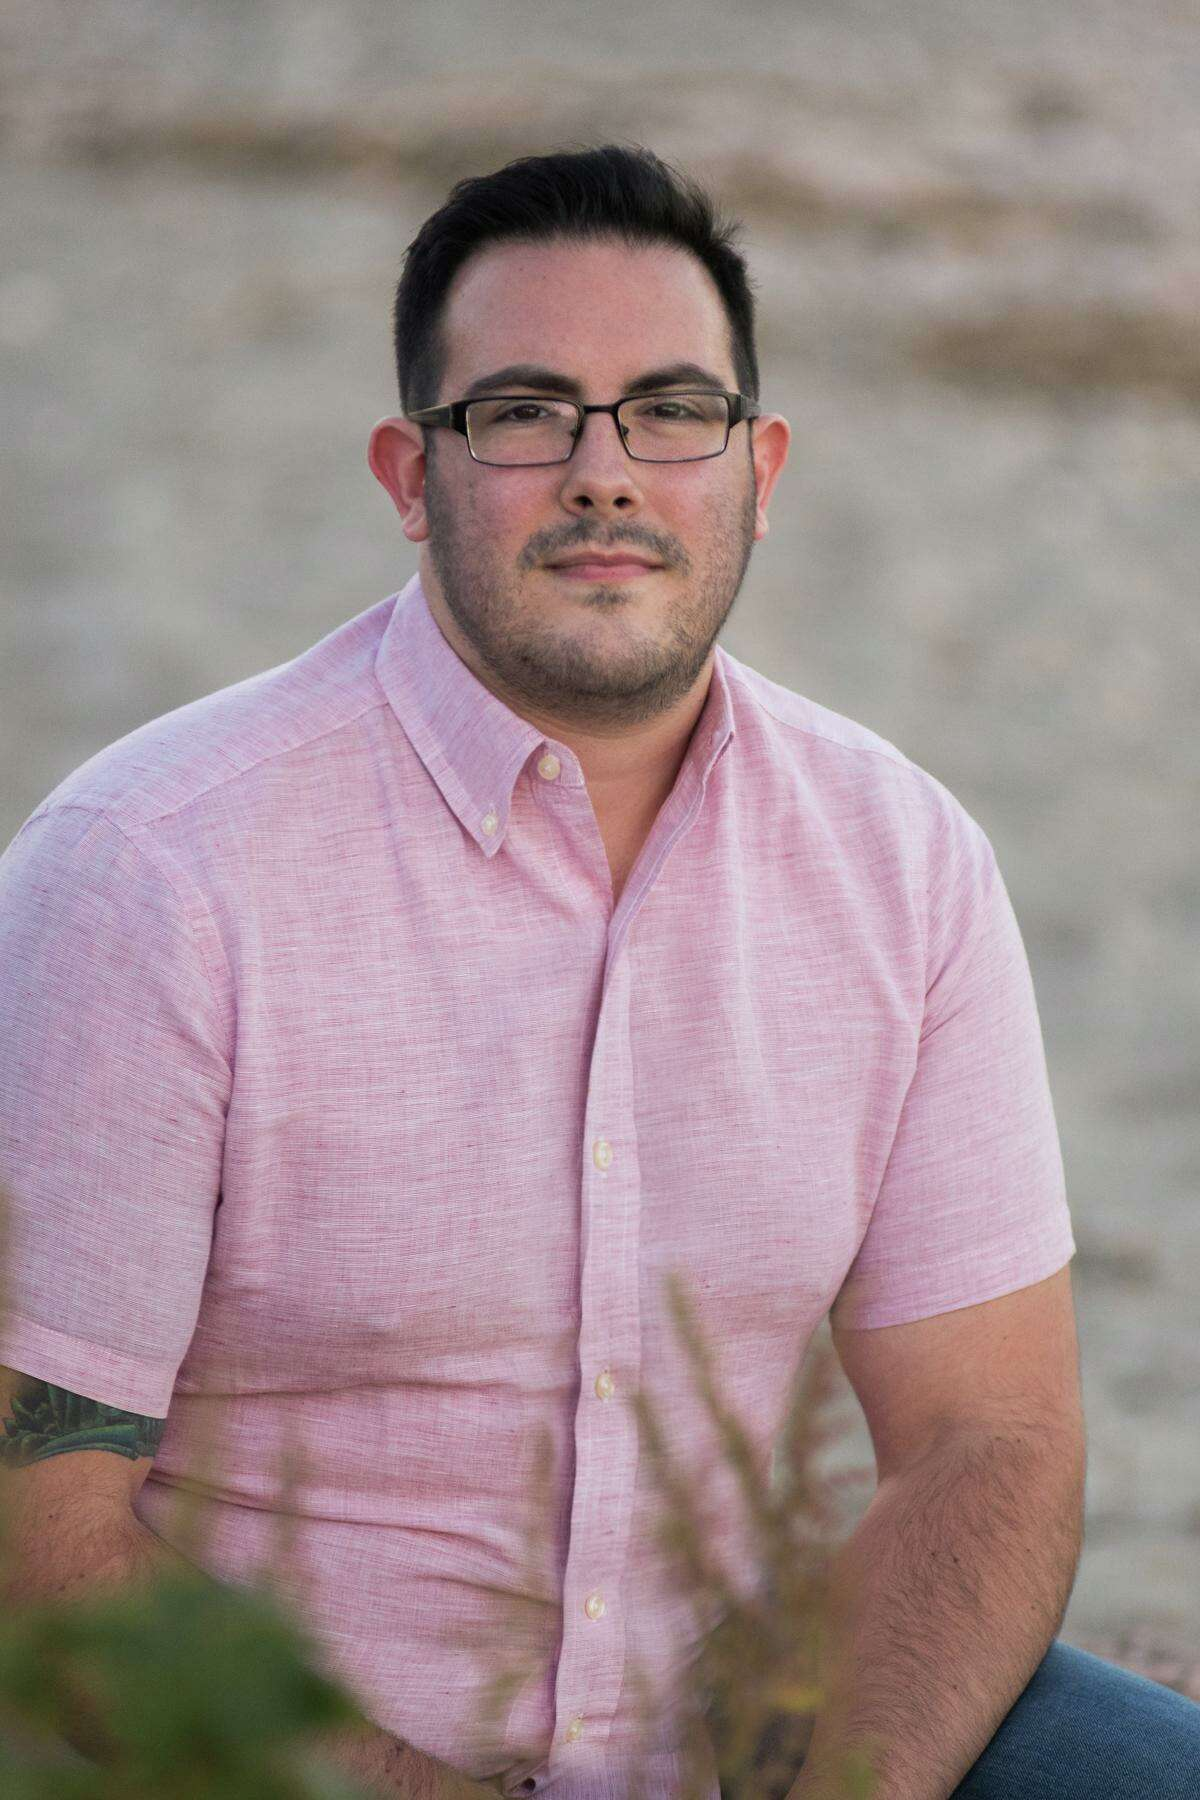 Shelton poet Ryan Meyer writes about the moments that shaped him in his new poetry collection